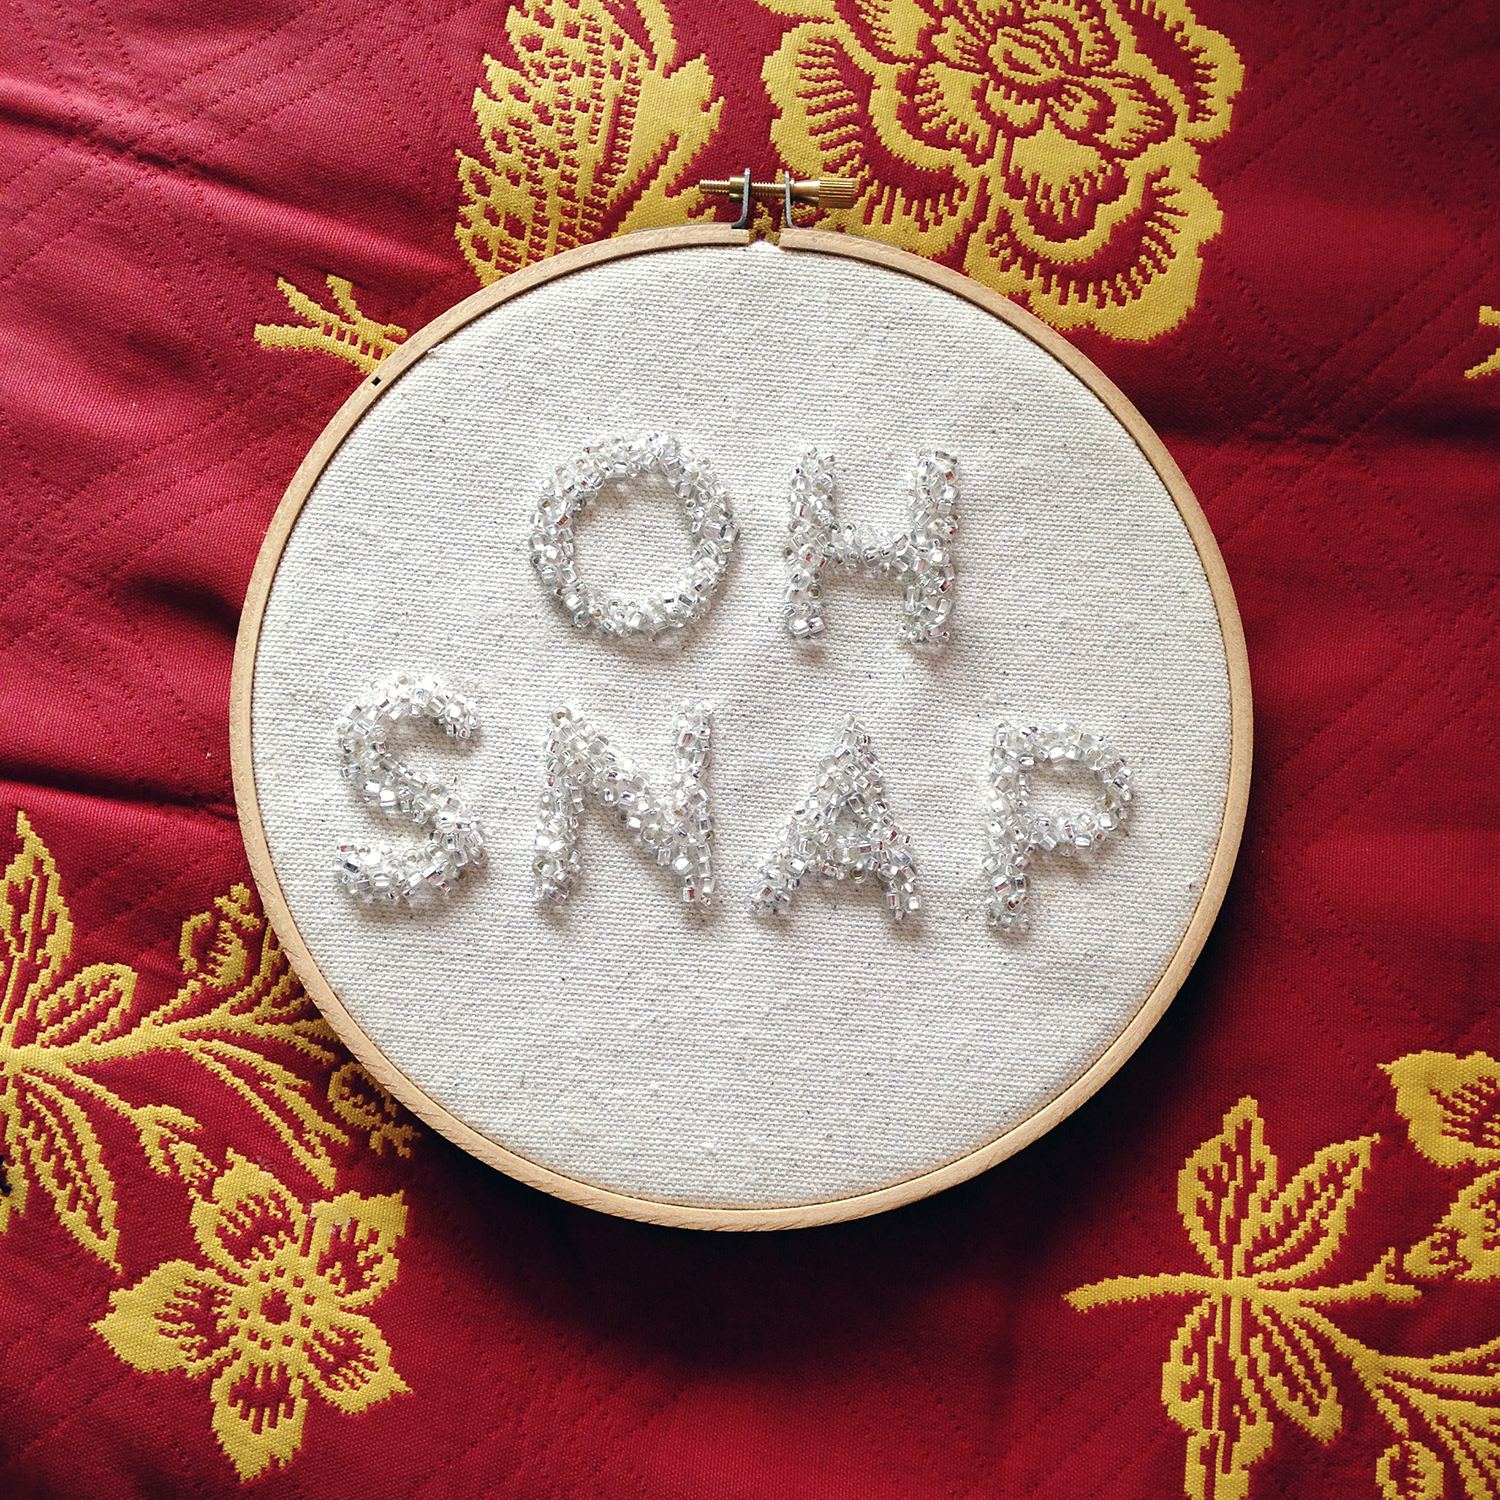 Stempel_Embroidery_OhSnap.jpg